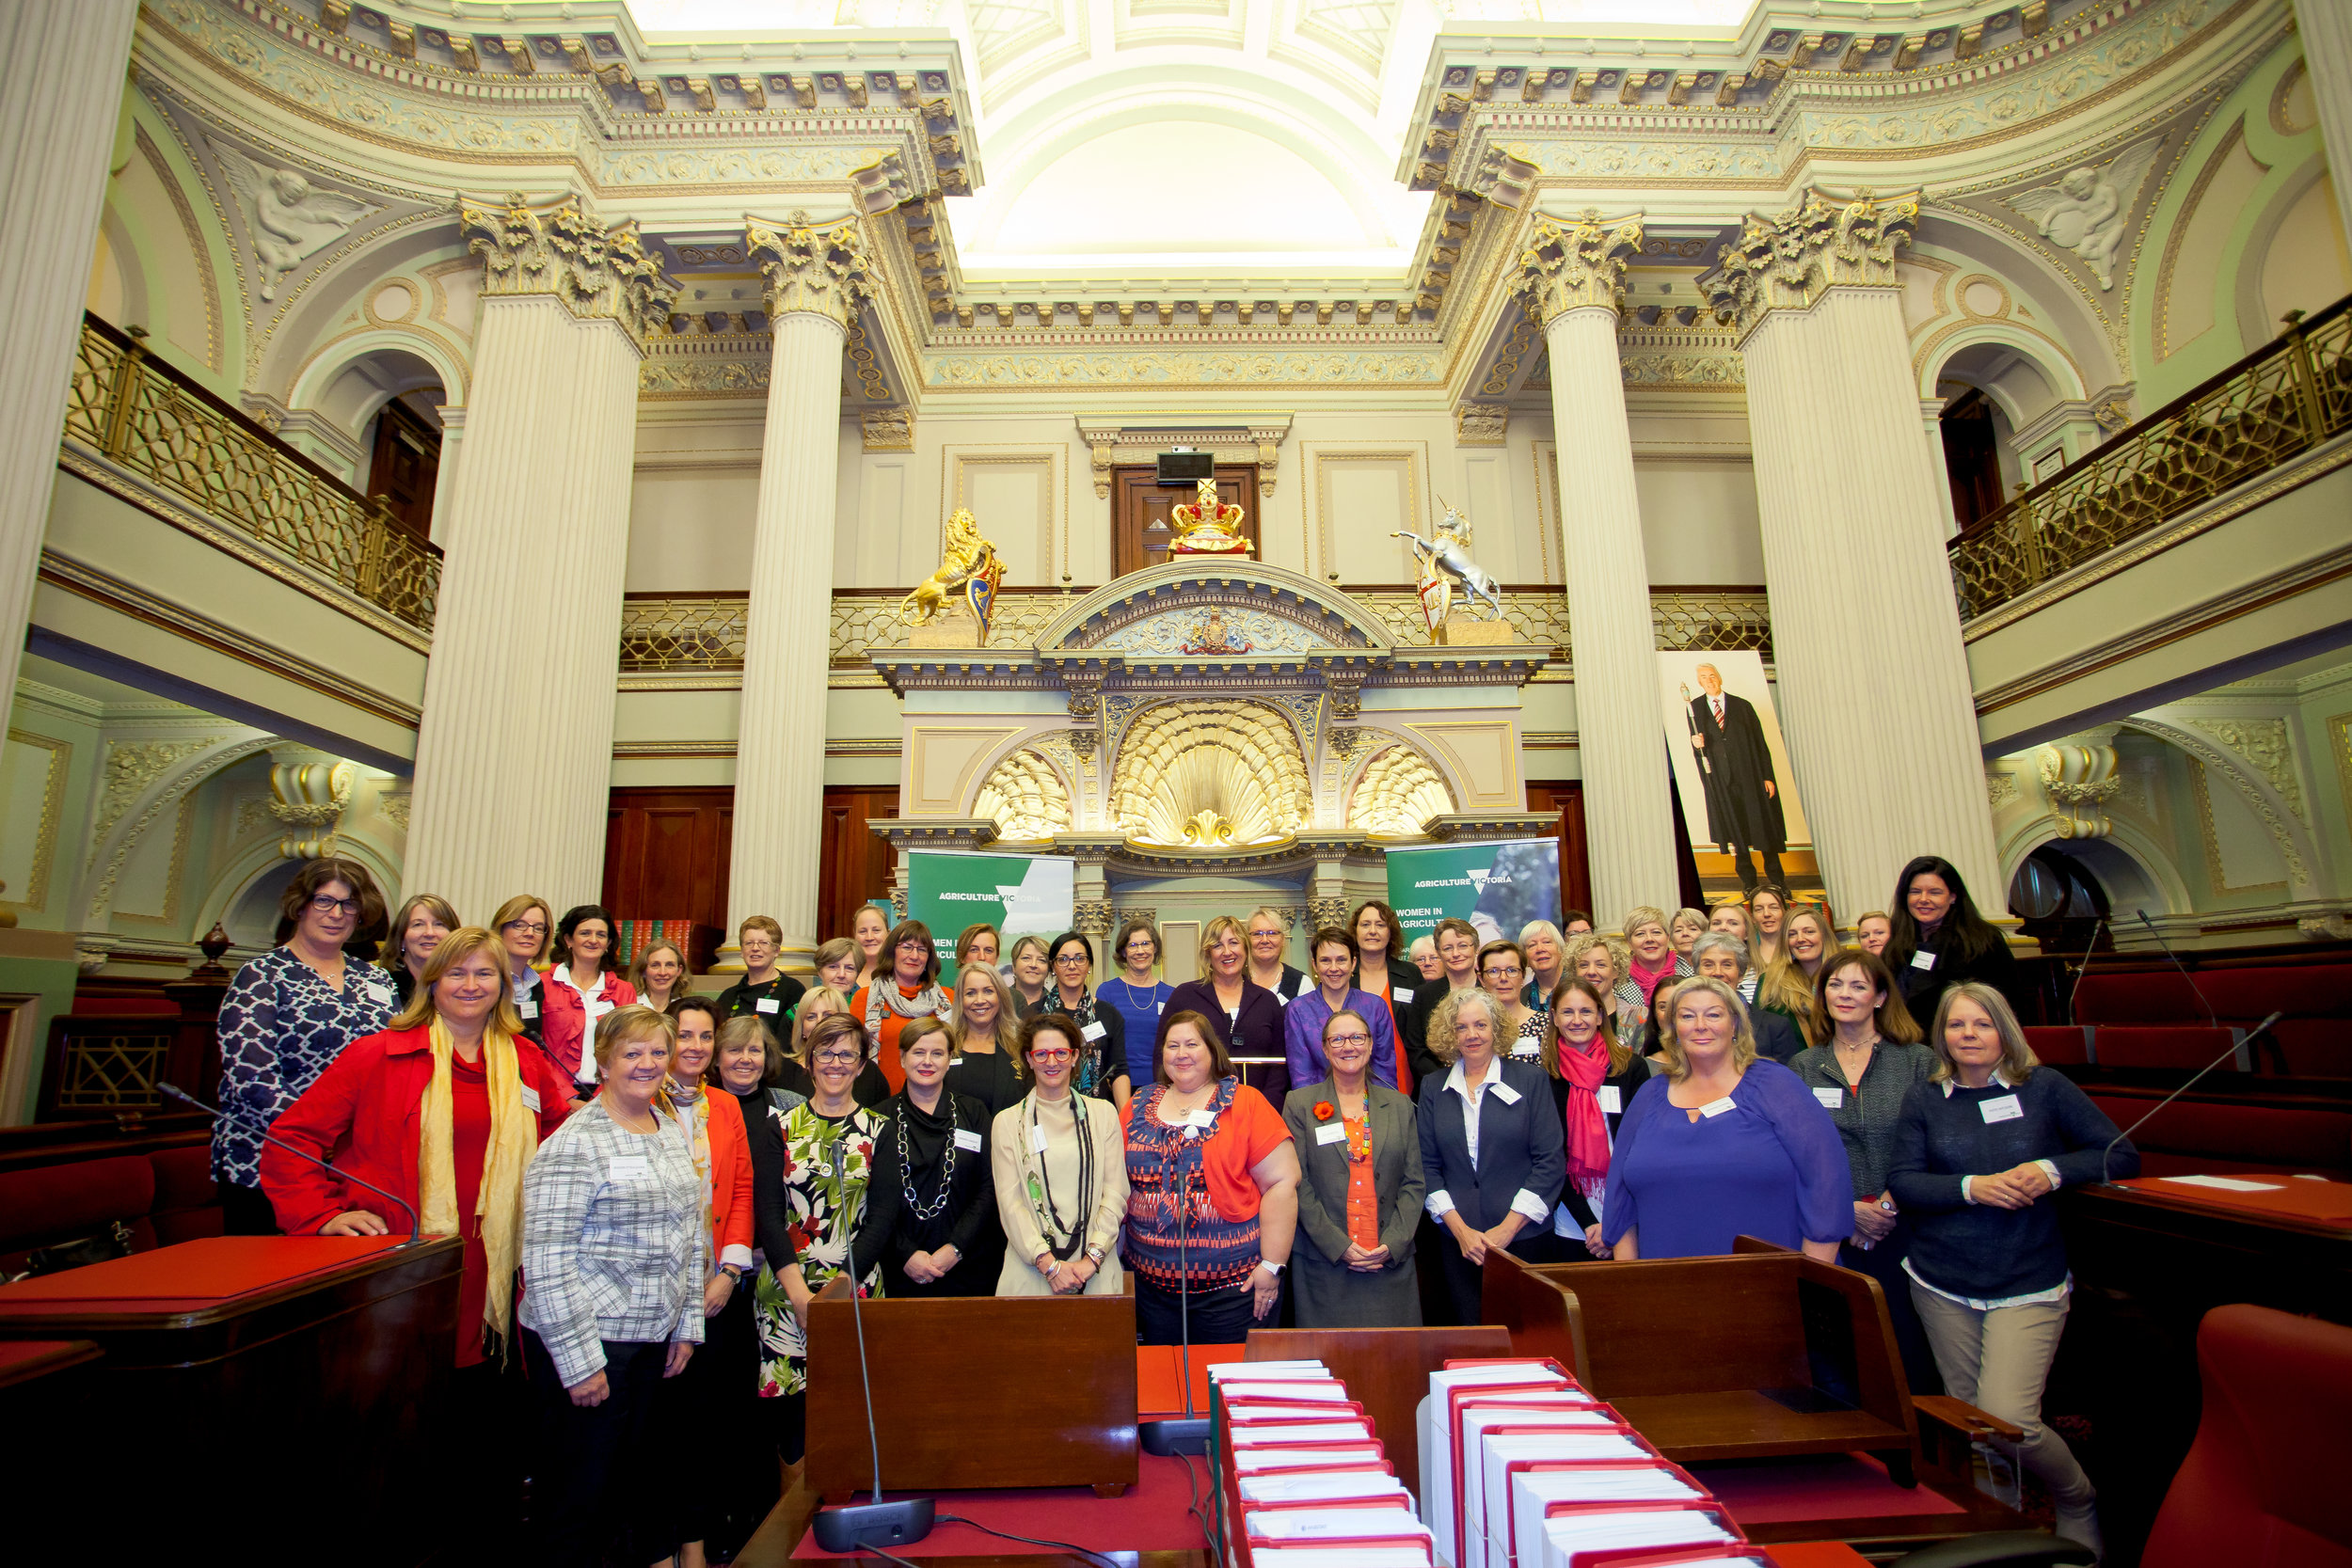 Women gathered at the Women in Agricutlure forum held at Parliament House, Melbourne, 2017